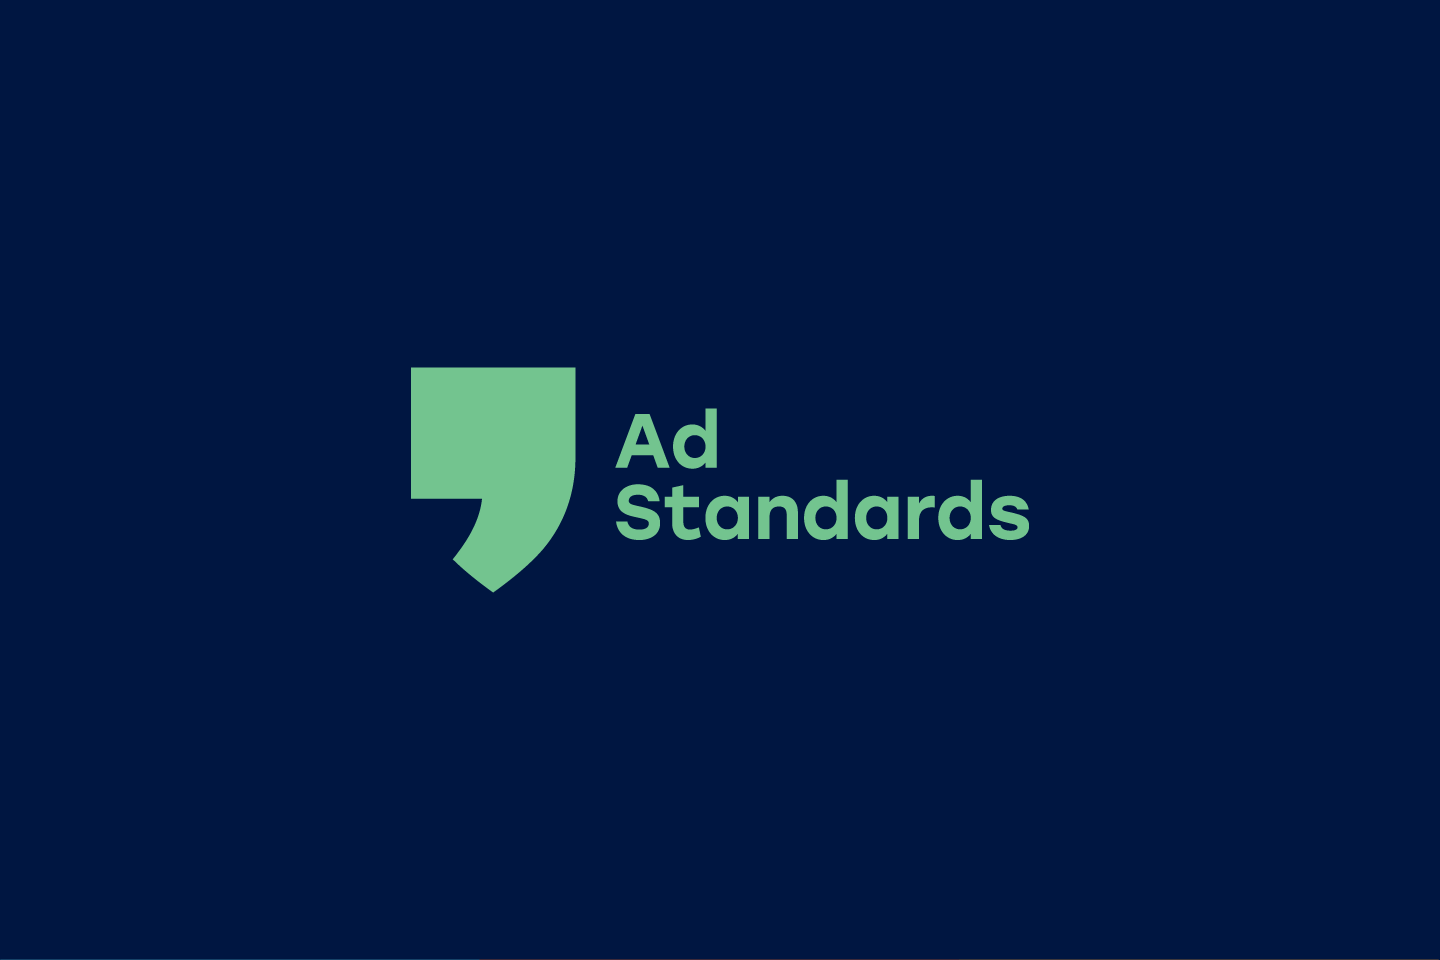 Ad Standards logo